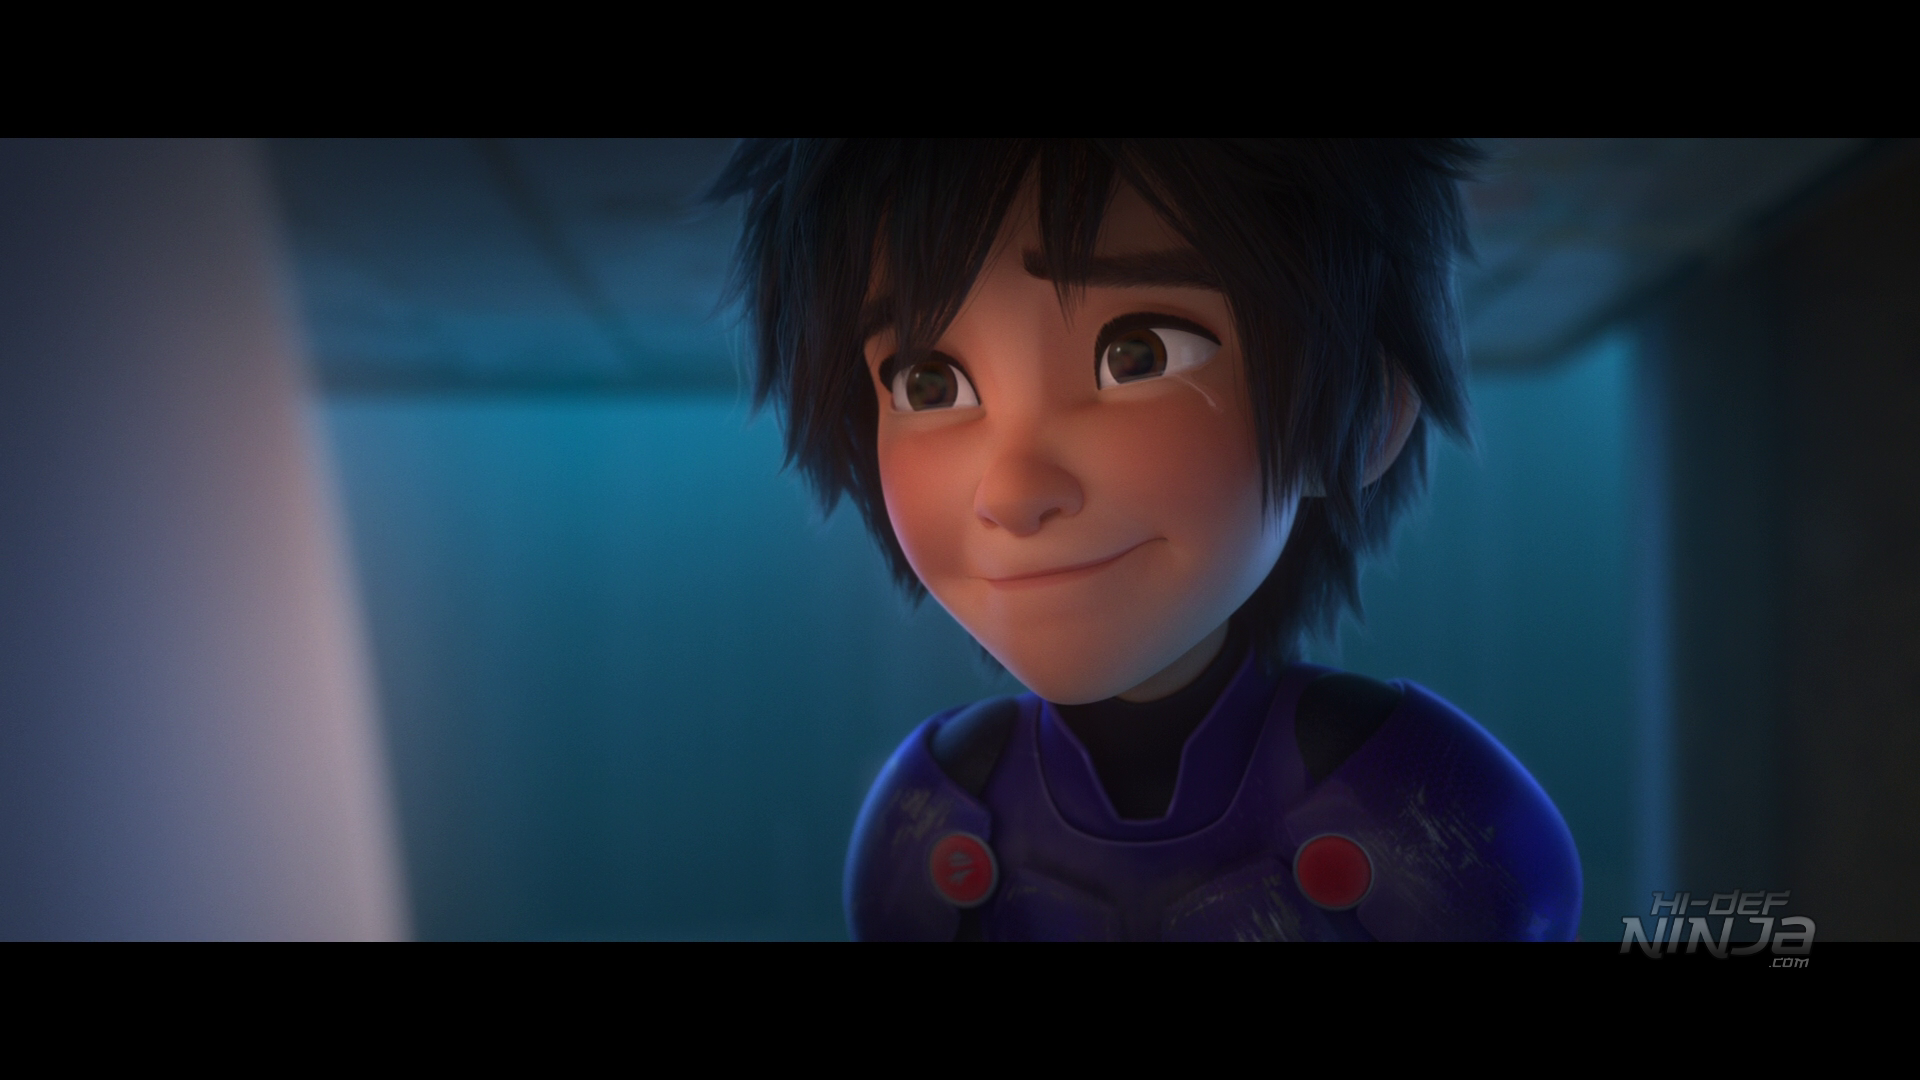 Big Hero 6 HiDefNinja (8)